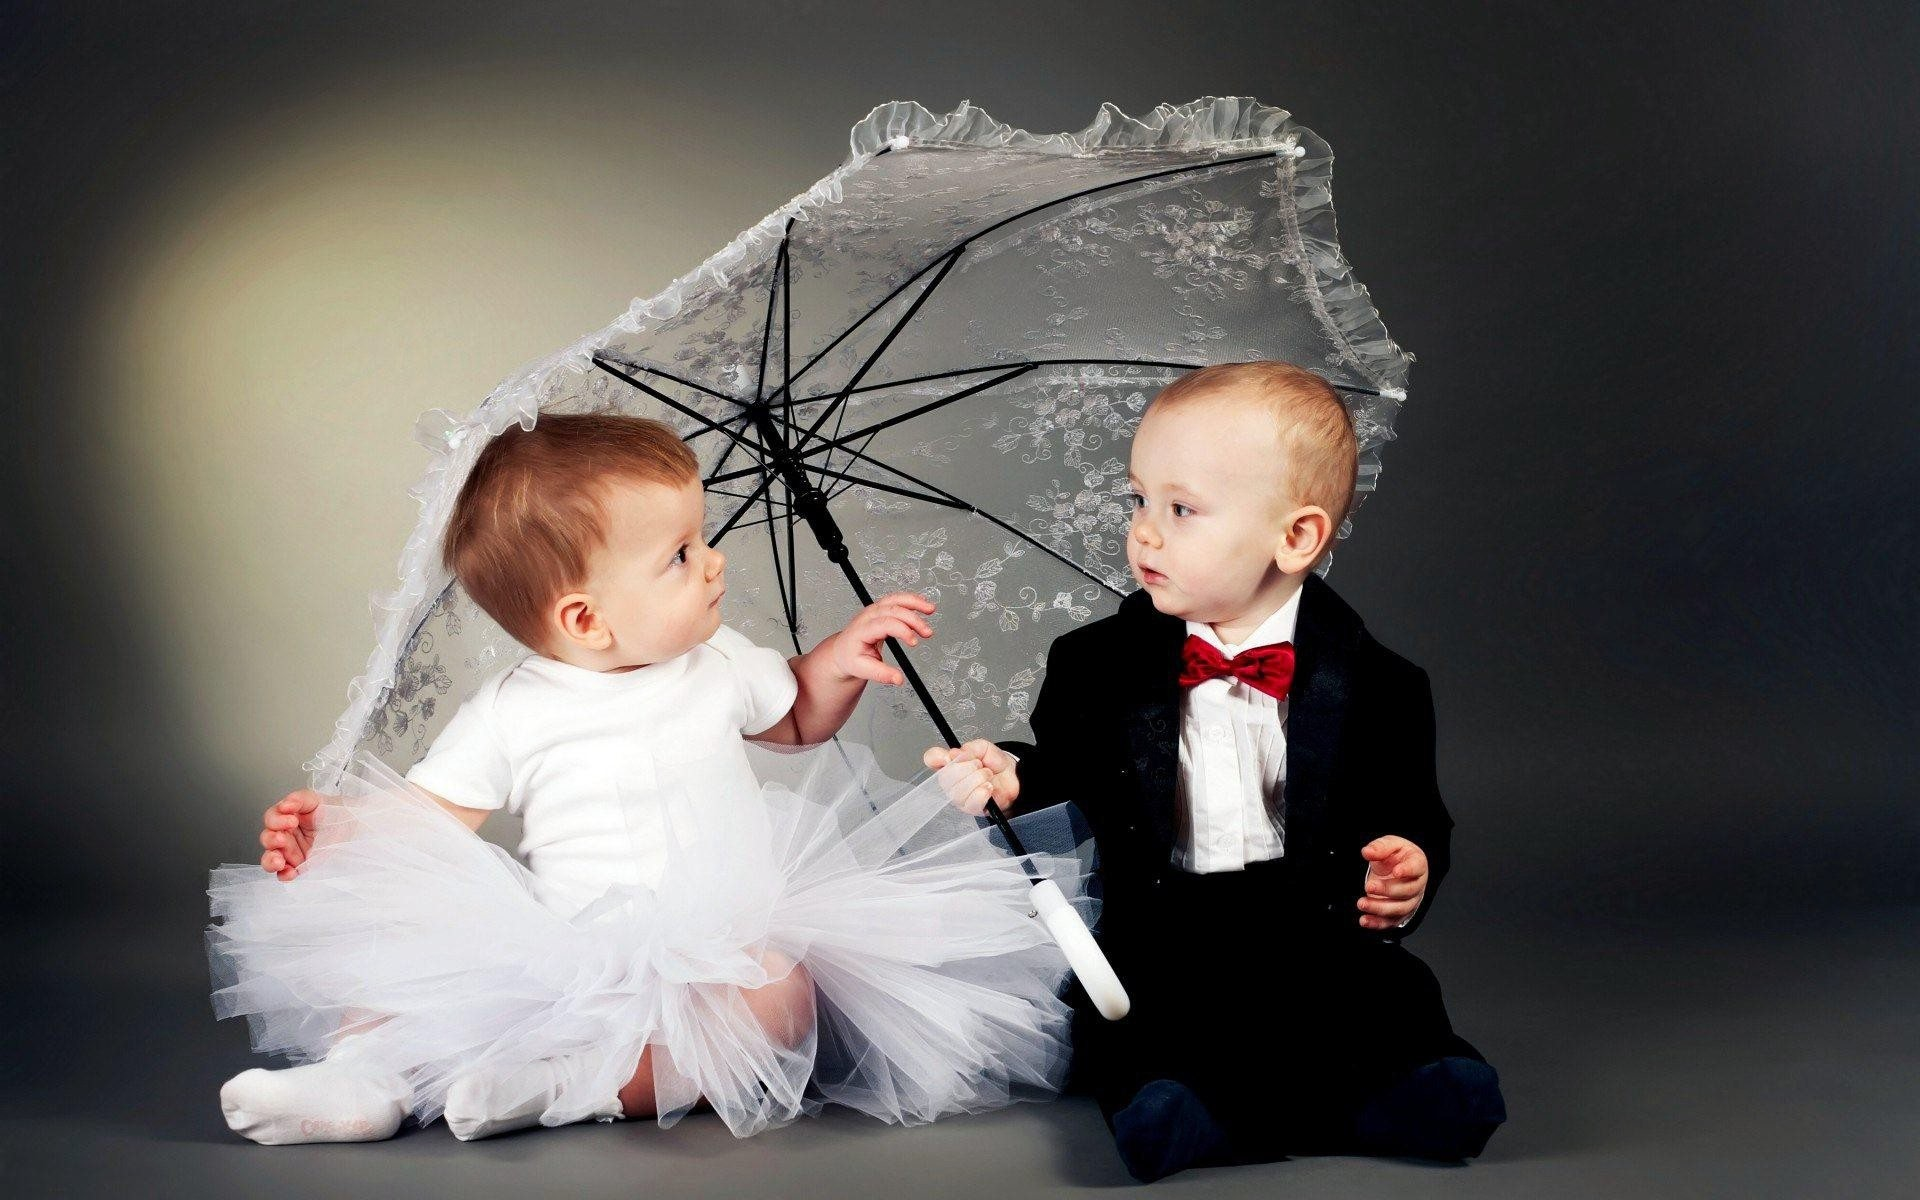 1920x1200 Cute-wedding-baby-couple-wallpaper